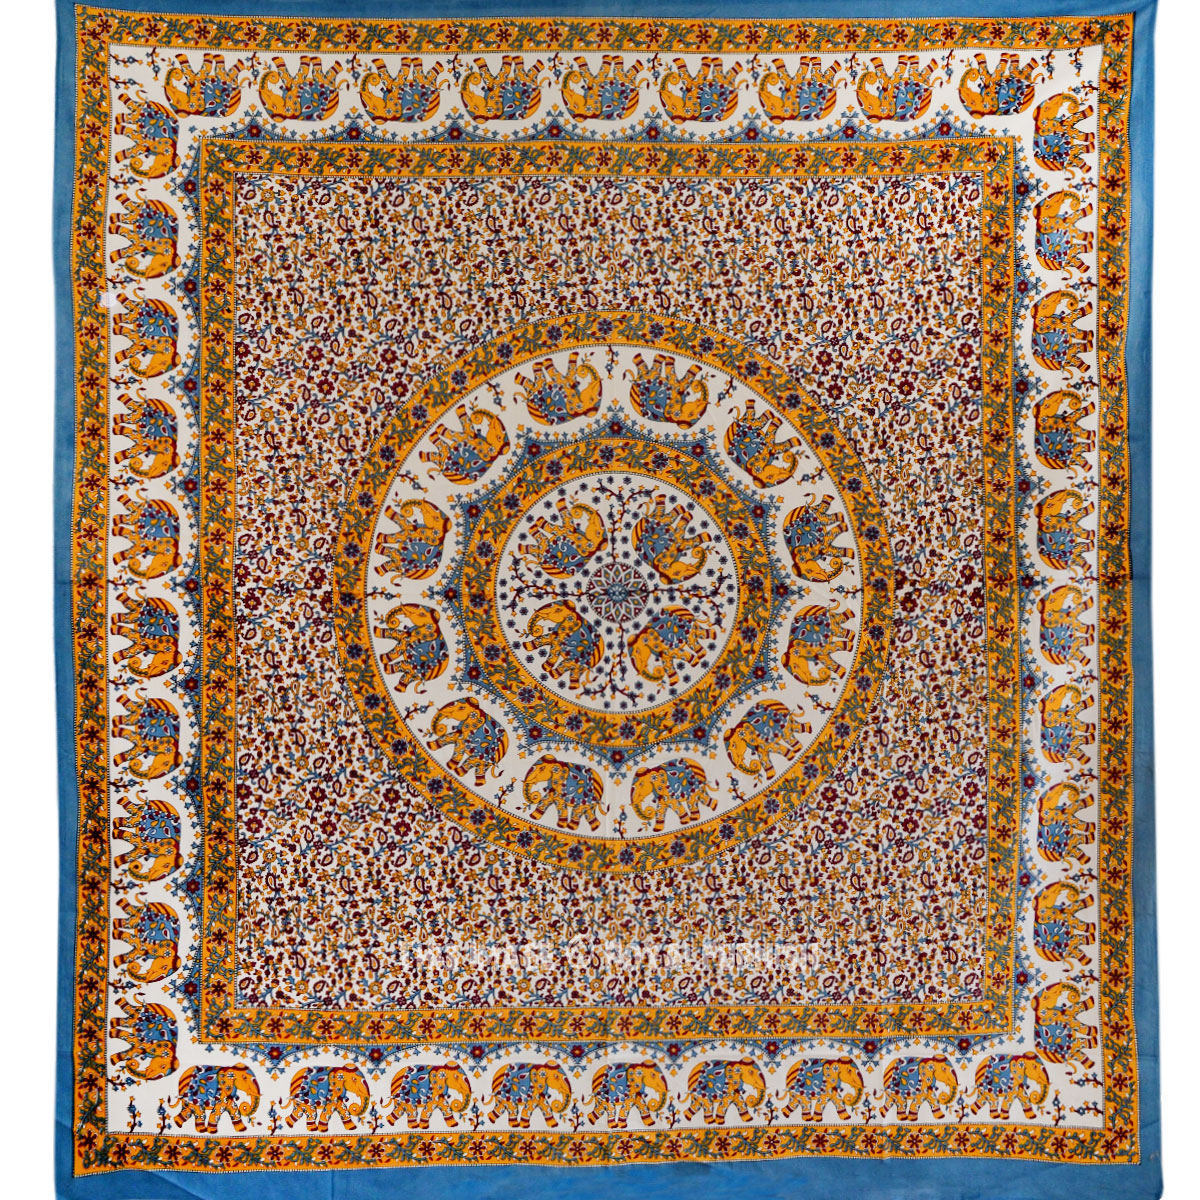 Multicolor Indian Elephant Mandala Hippie Tapestry Wall